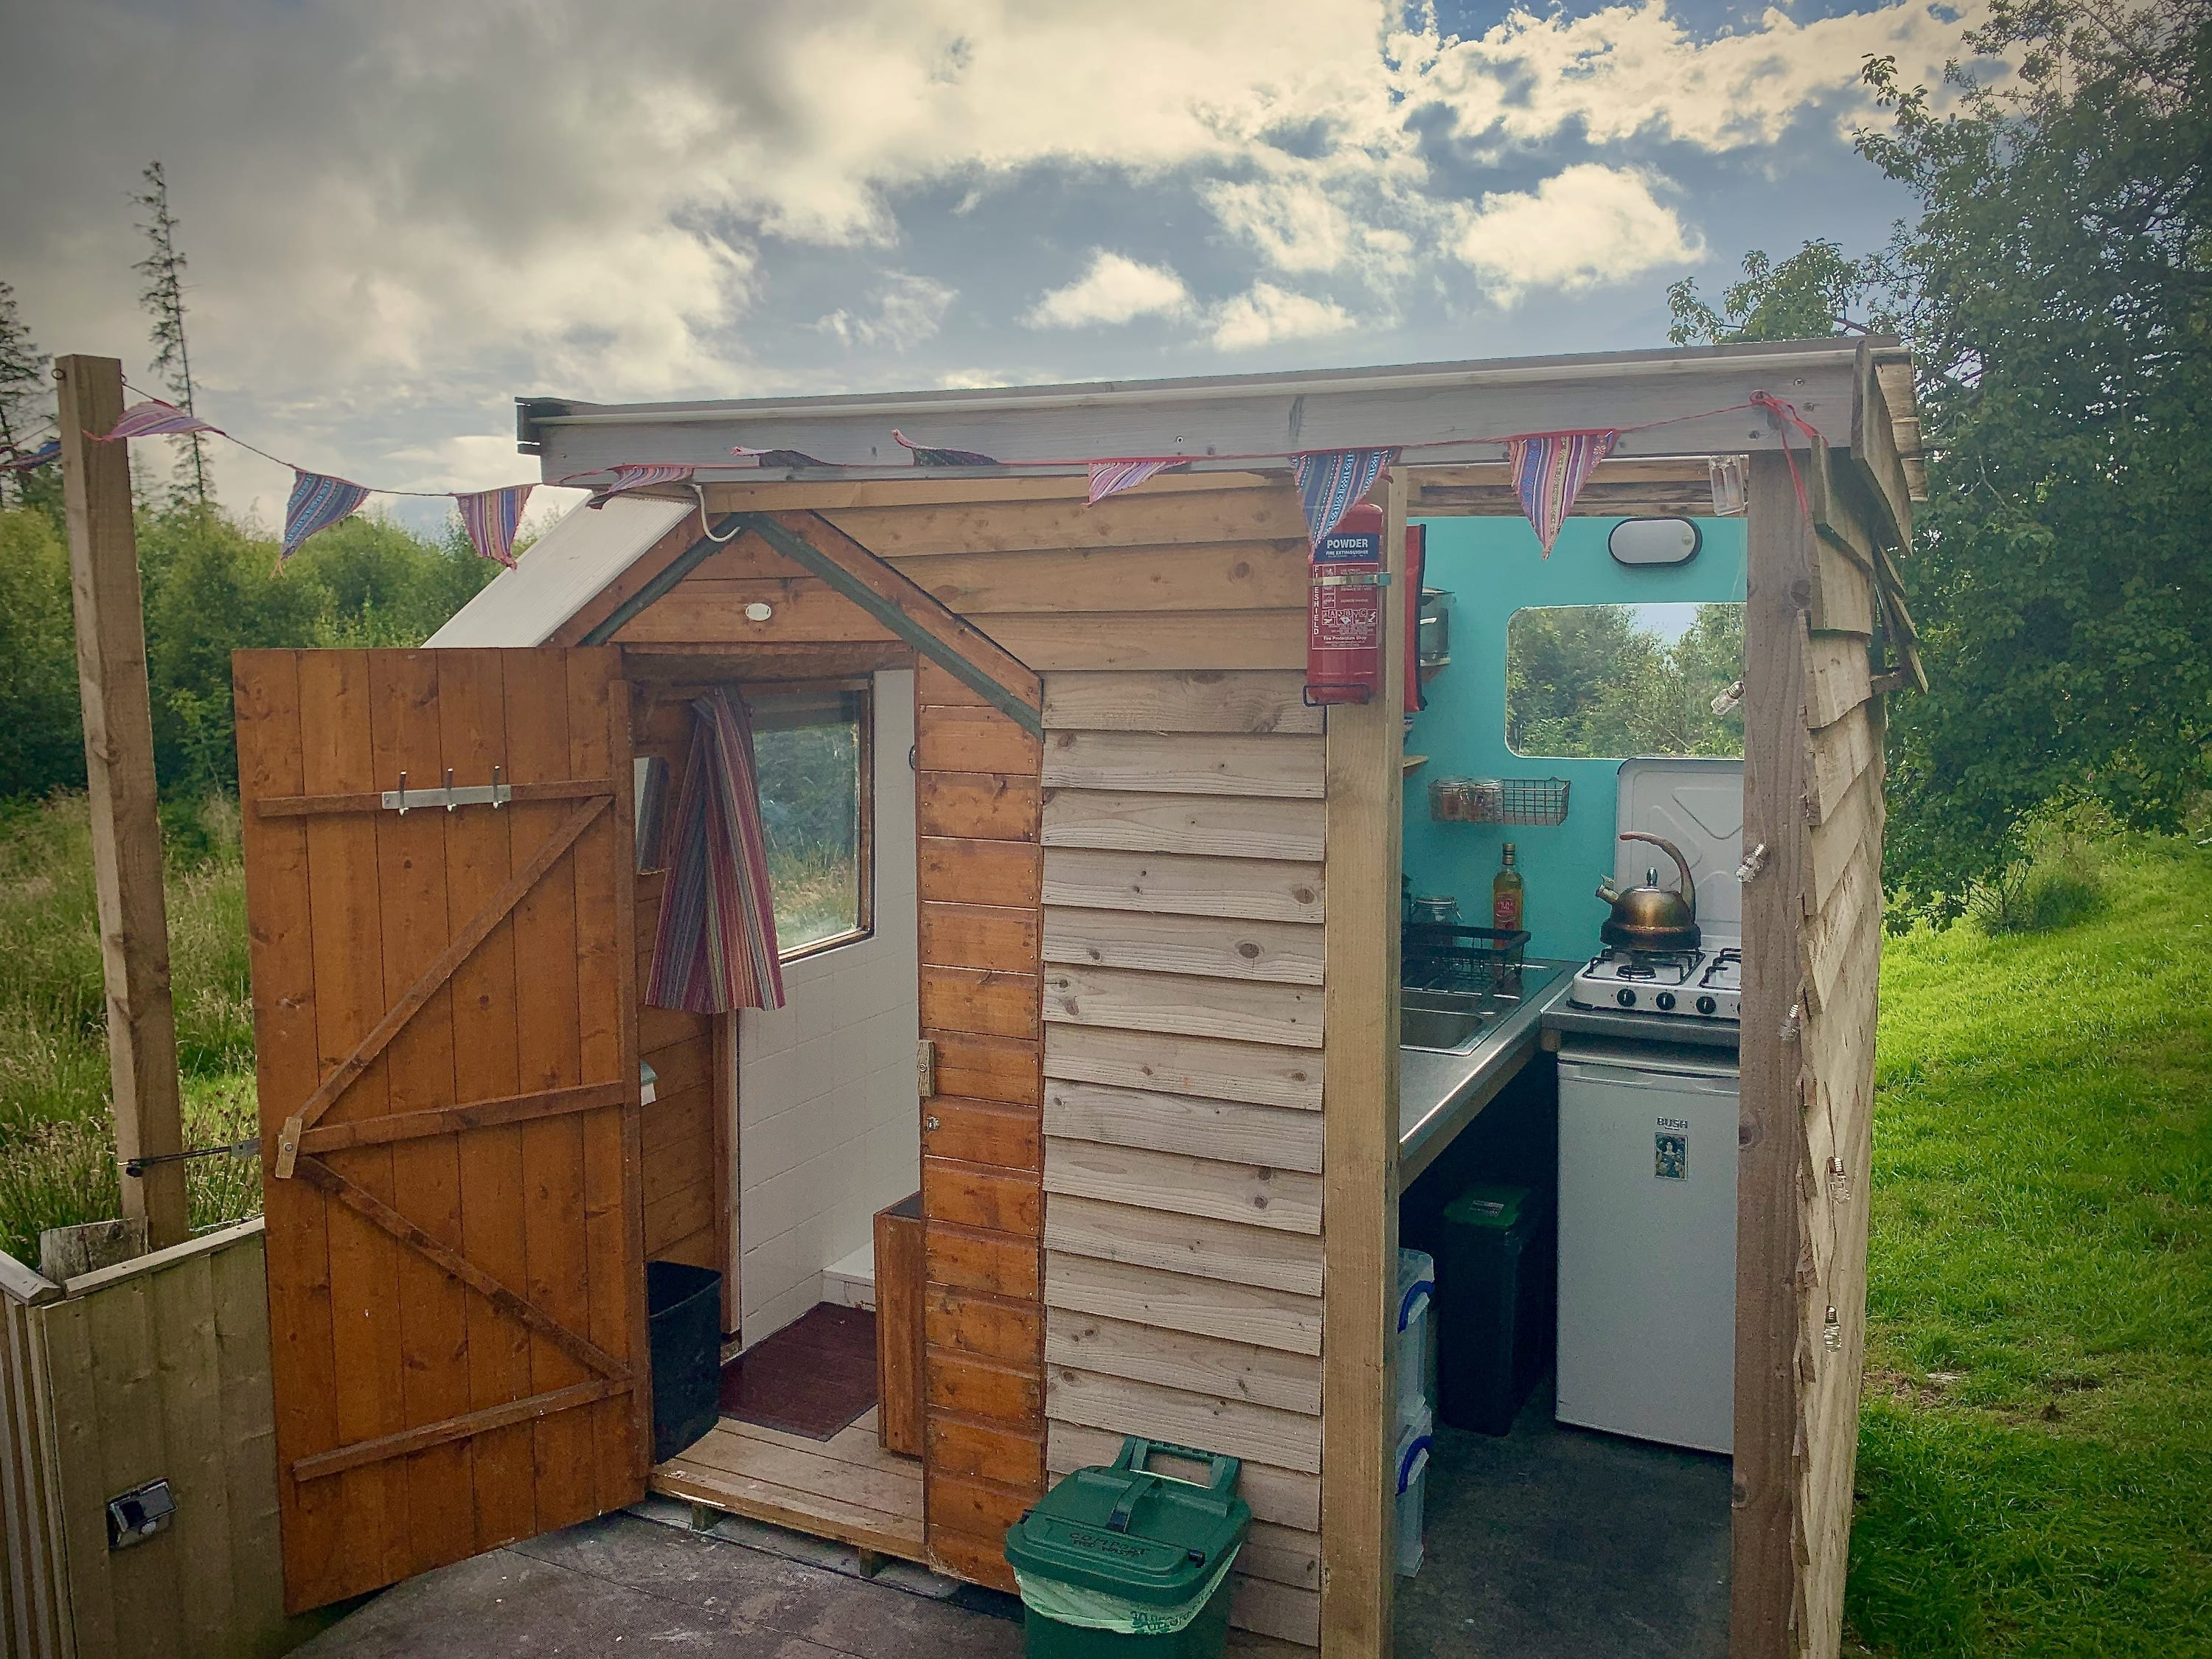 Ty crwn mawr yurt kitchen and bathroom off grid sustainable eco glampsite and glamping